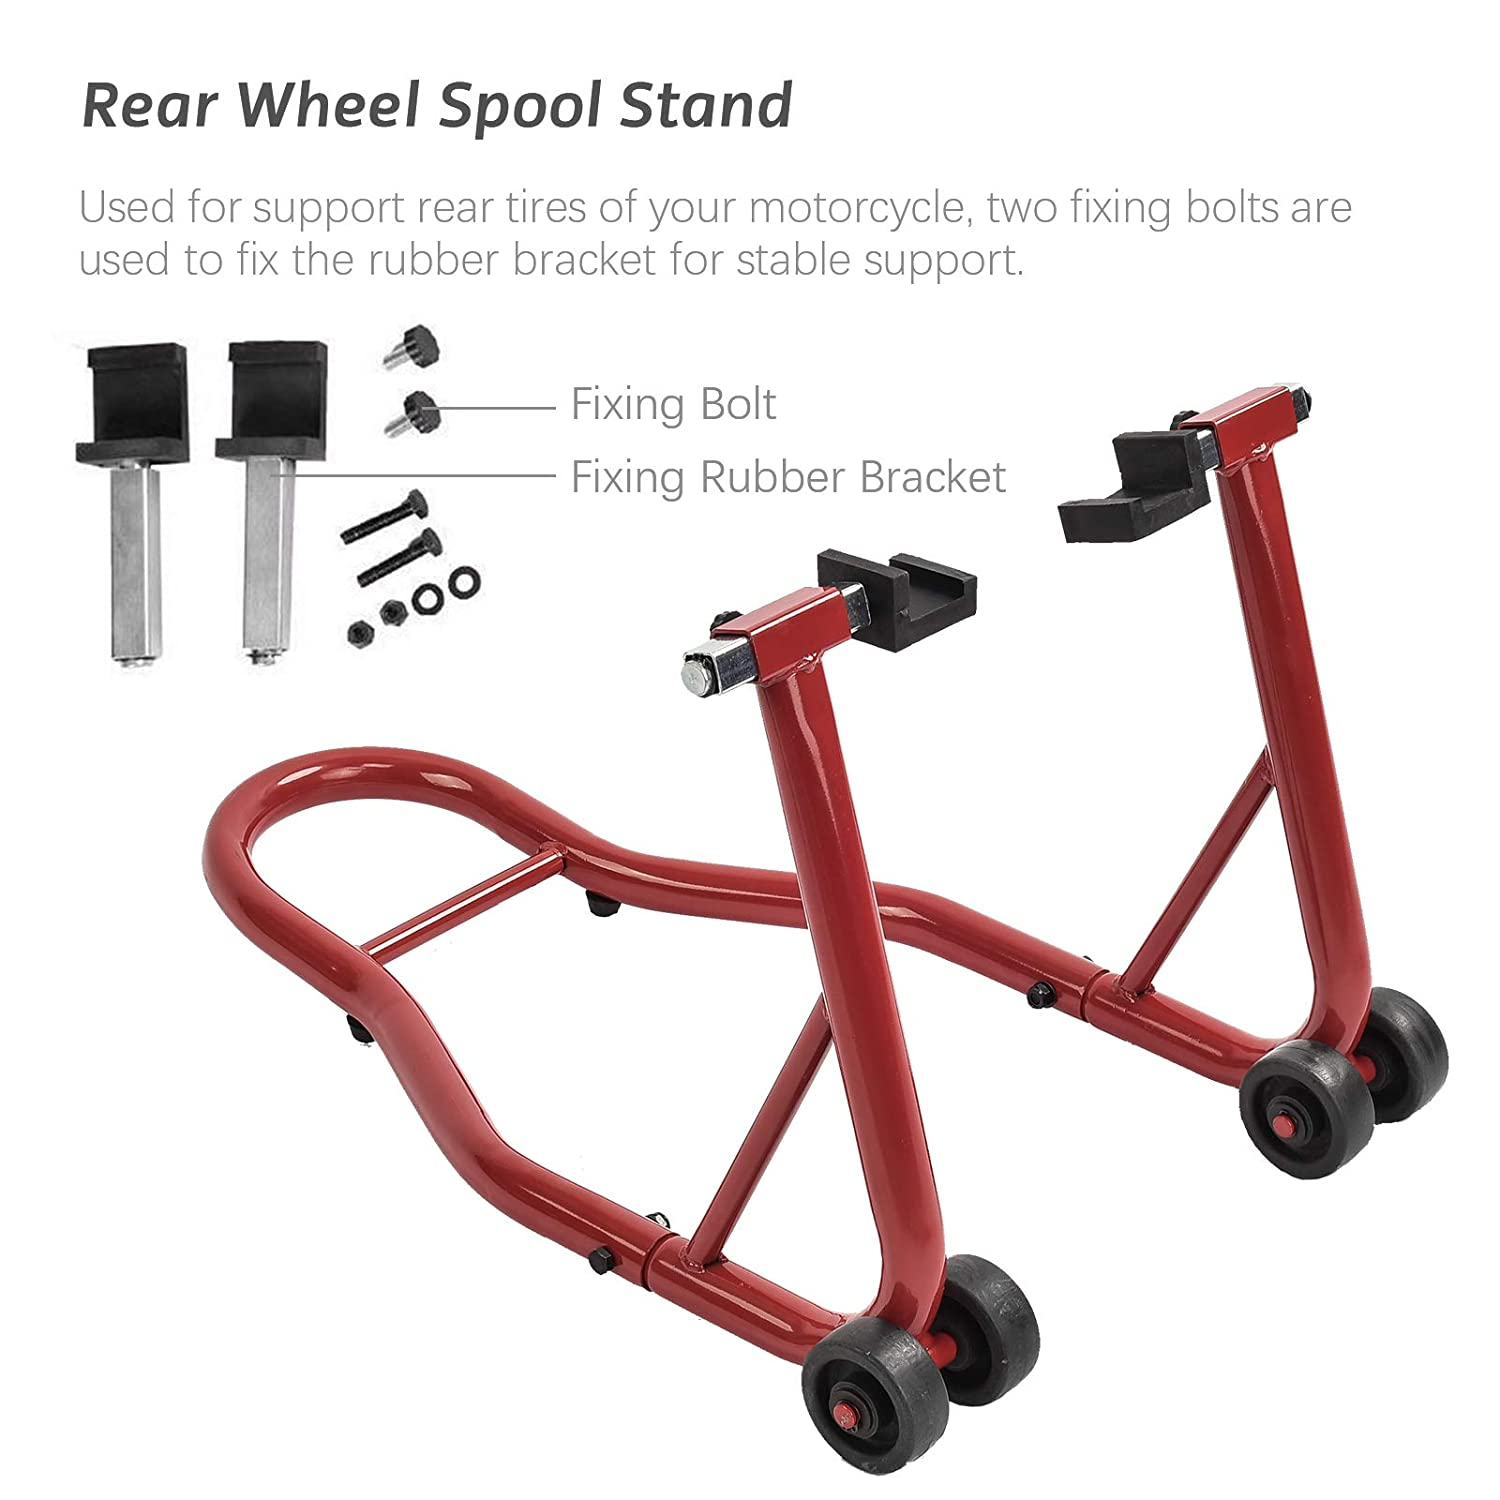 Tammible Motorcycle Stands Front and Rear Replaceable Wheel Paddocks W//Swingarm Fork Spool Lift Combo Kit